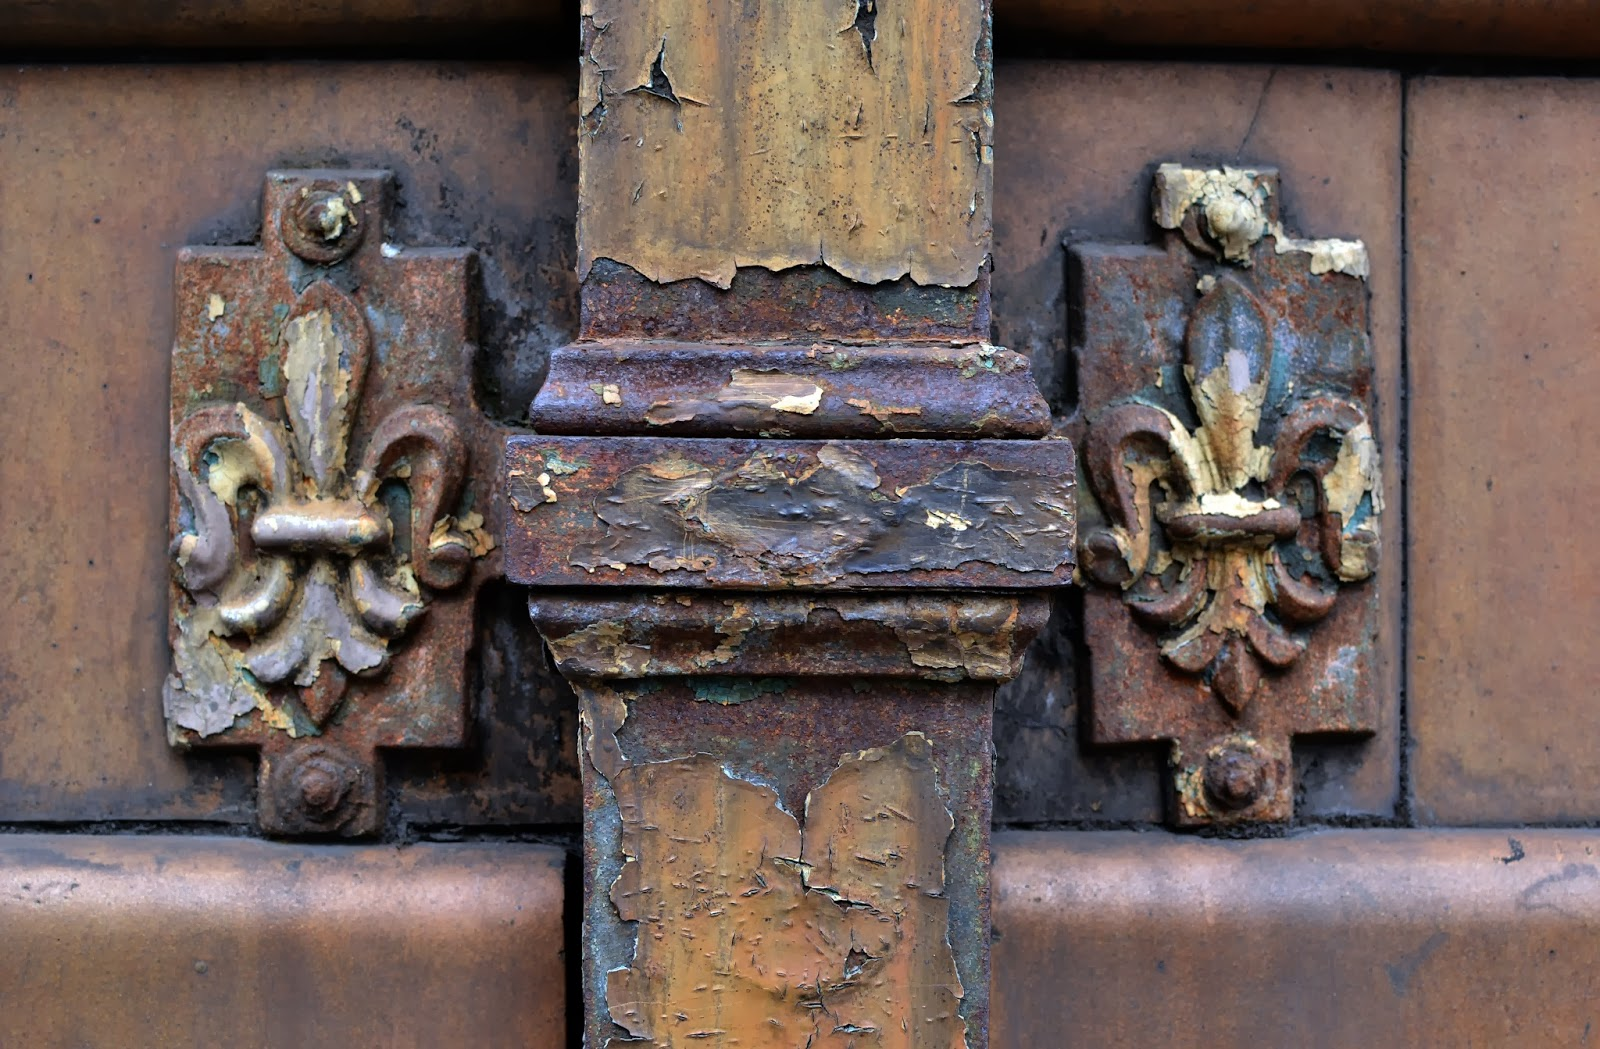 London road fire station, observational photography, rusty, Details, exploring city, close up photography, manchester, urbex, ephemera, urban narrative